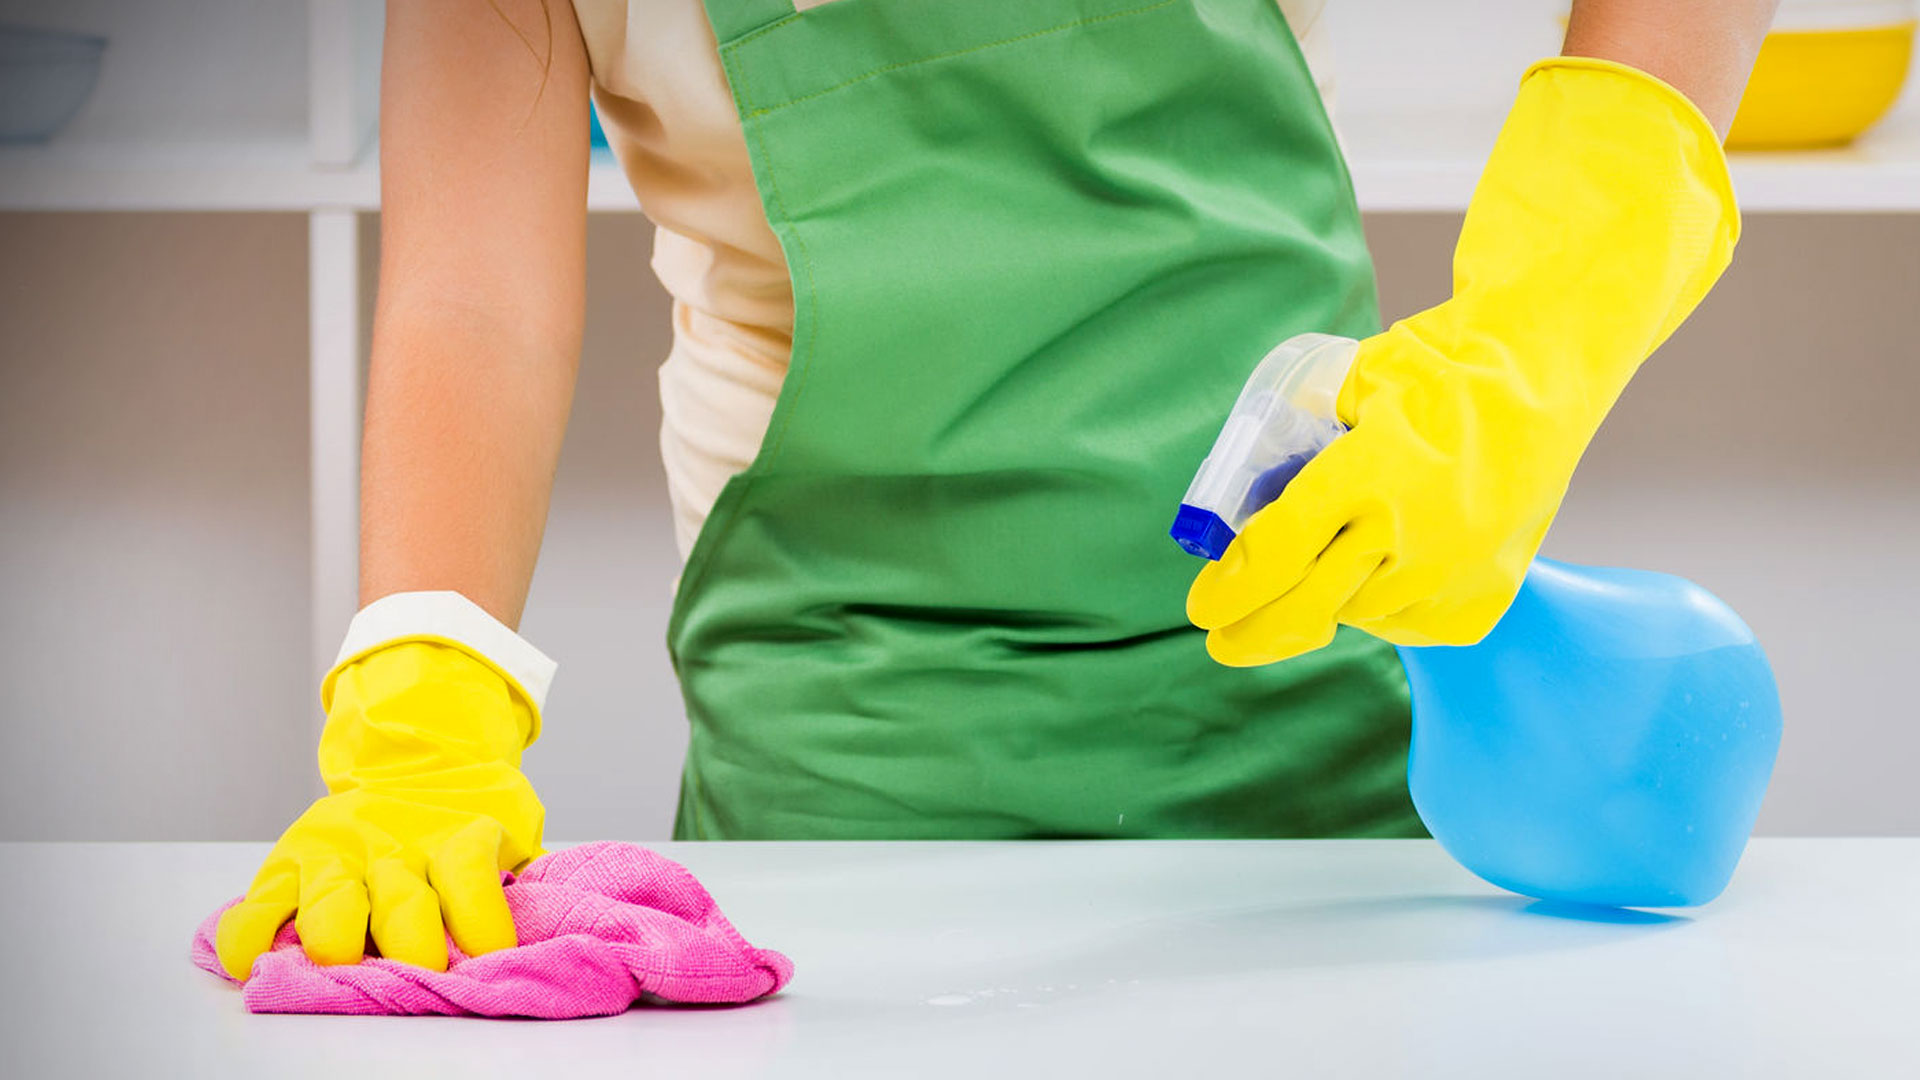 gov.sg | 5 Steps To Clean And Disinfect Your Home